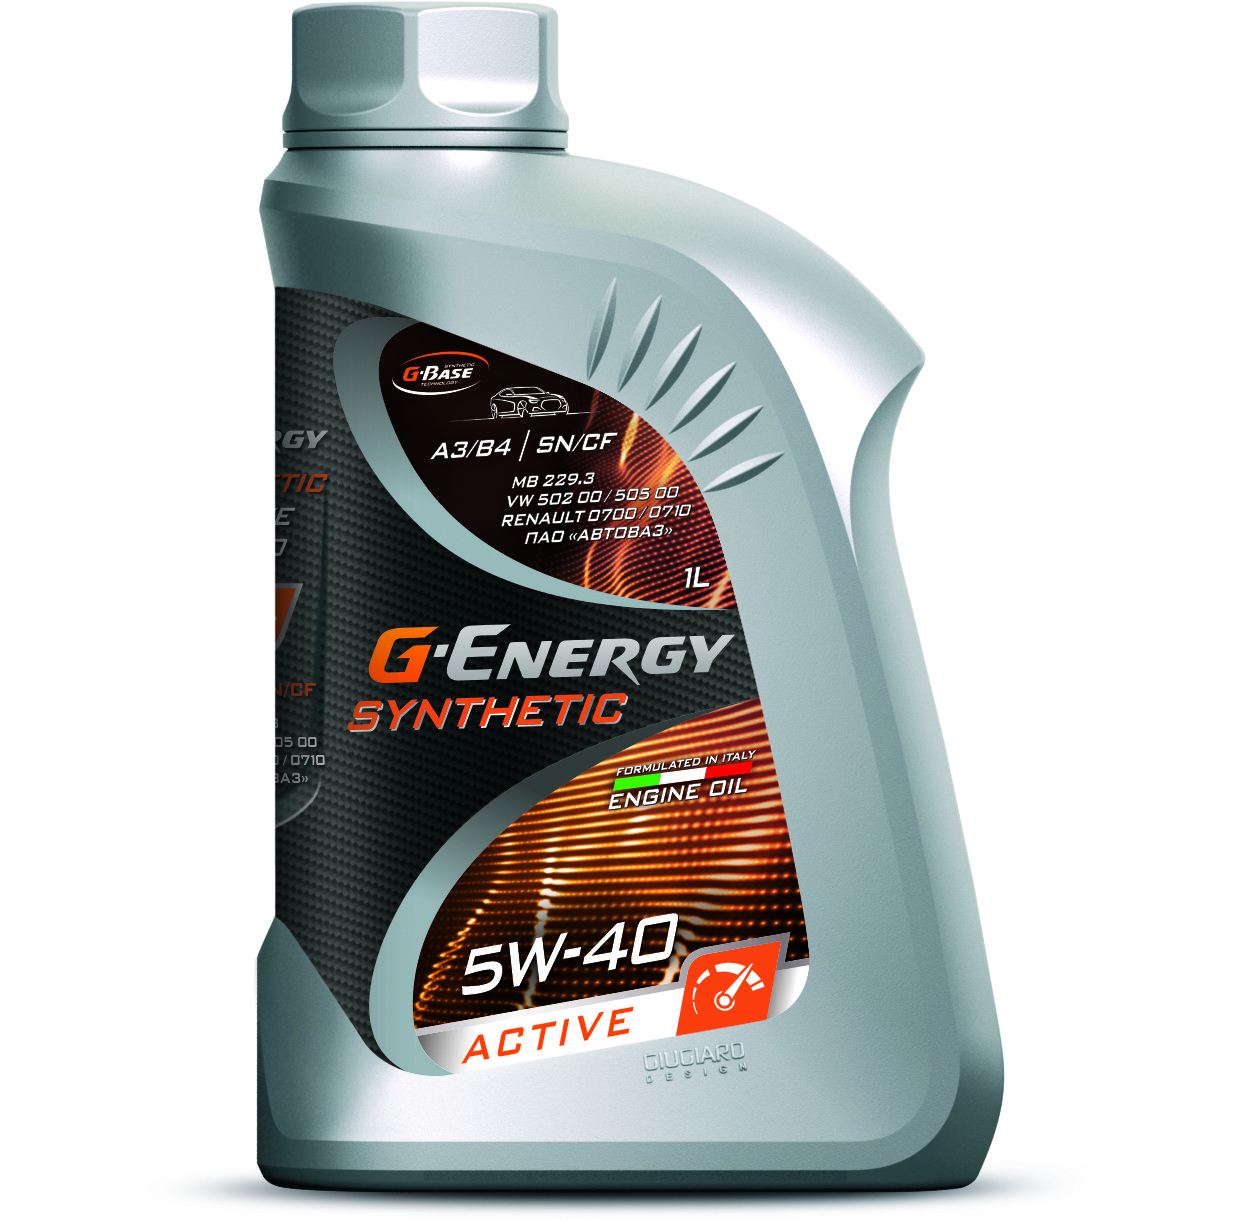 Моторное масло G-ENERGY SYNTHETIC ACTIVE 5W-40 1L